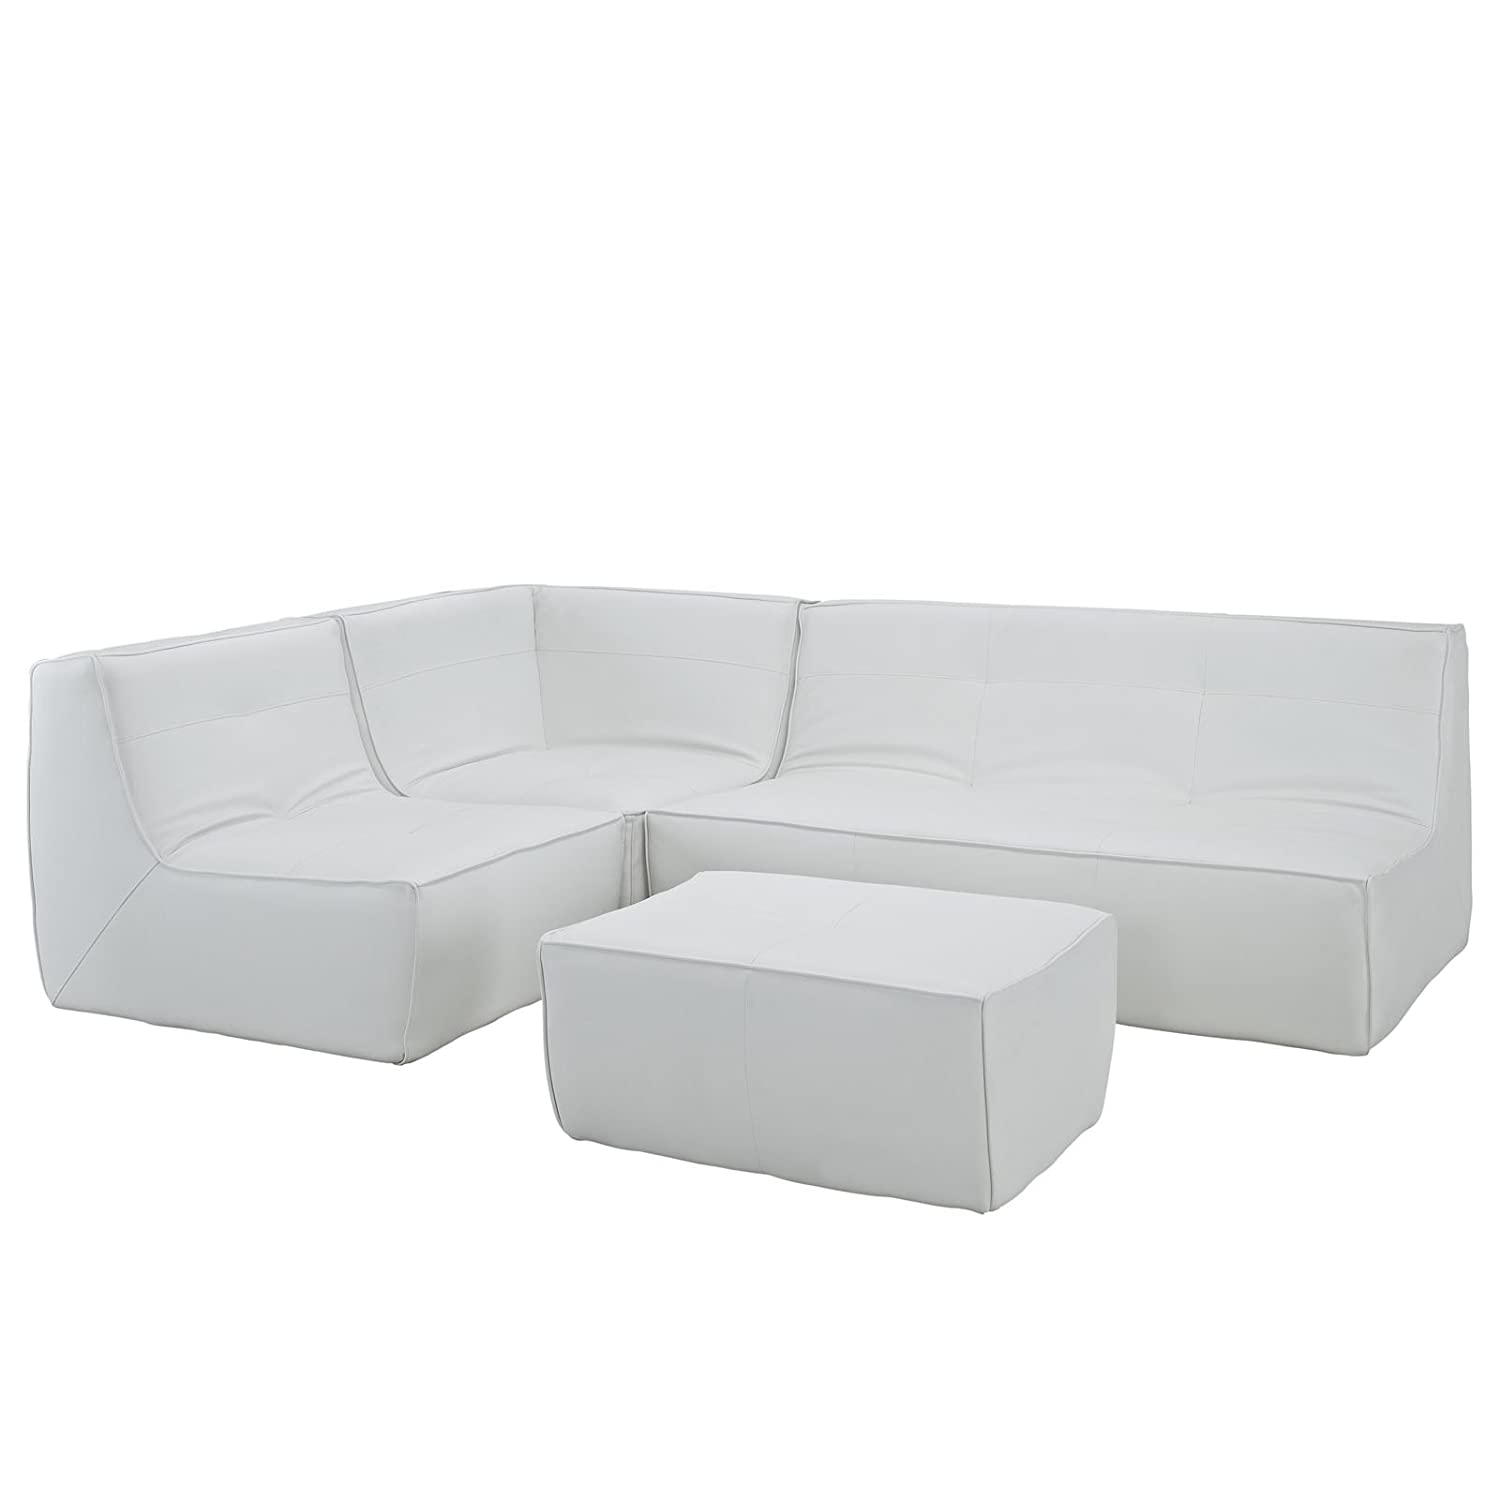 Align 4 Piece Bonded Leather Leather Sectional Sofa + FREE Ebook for Modern Home Design Inspirations